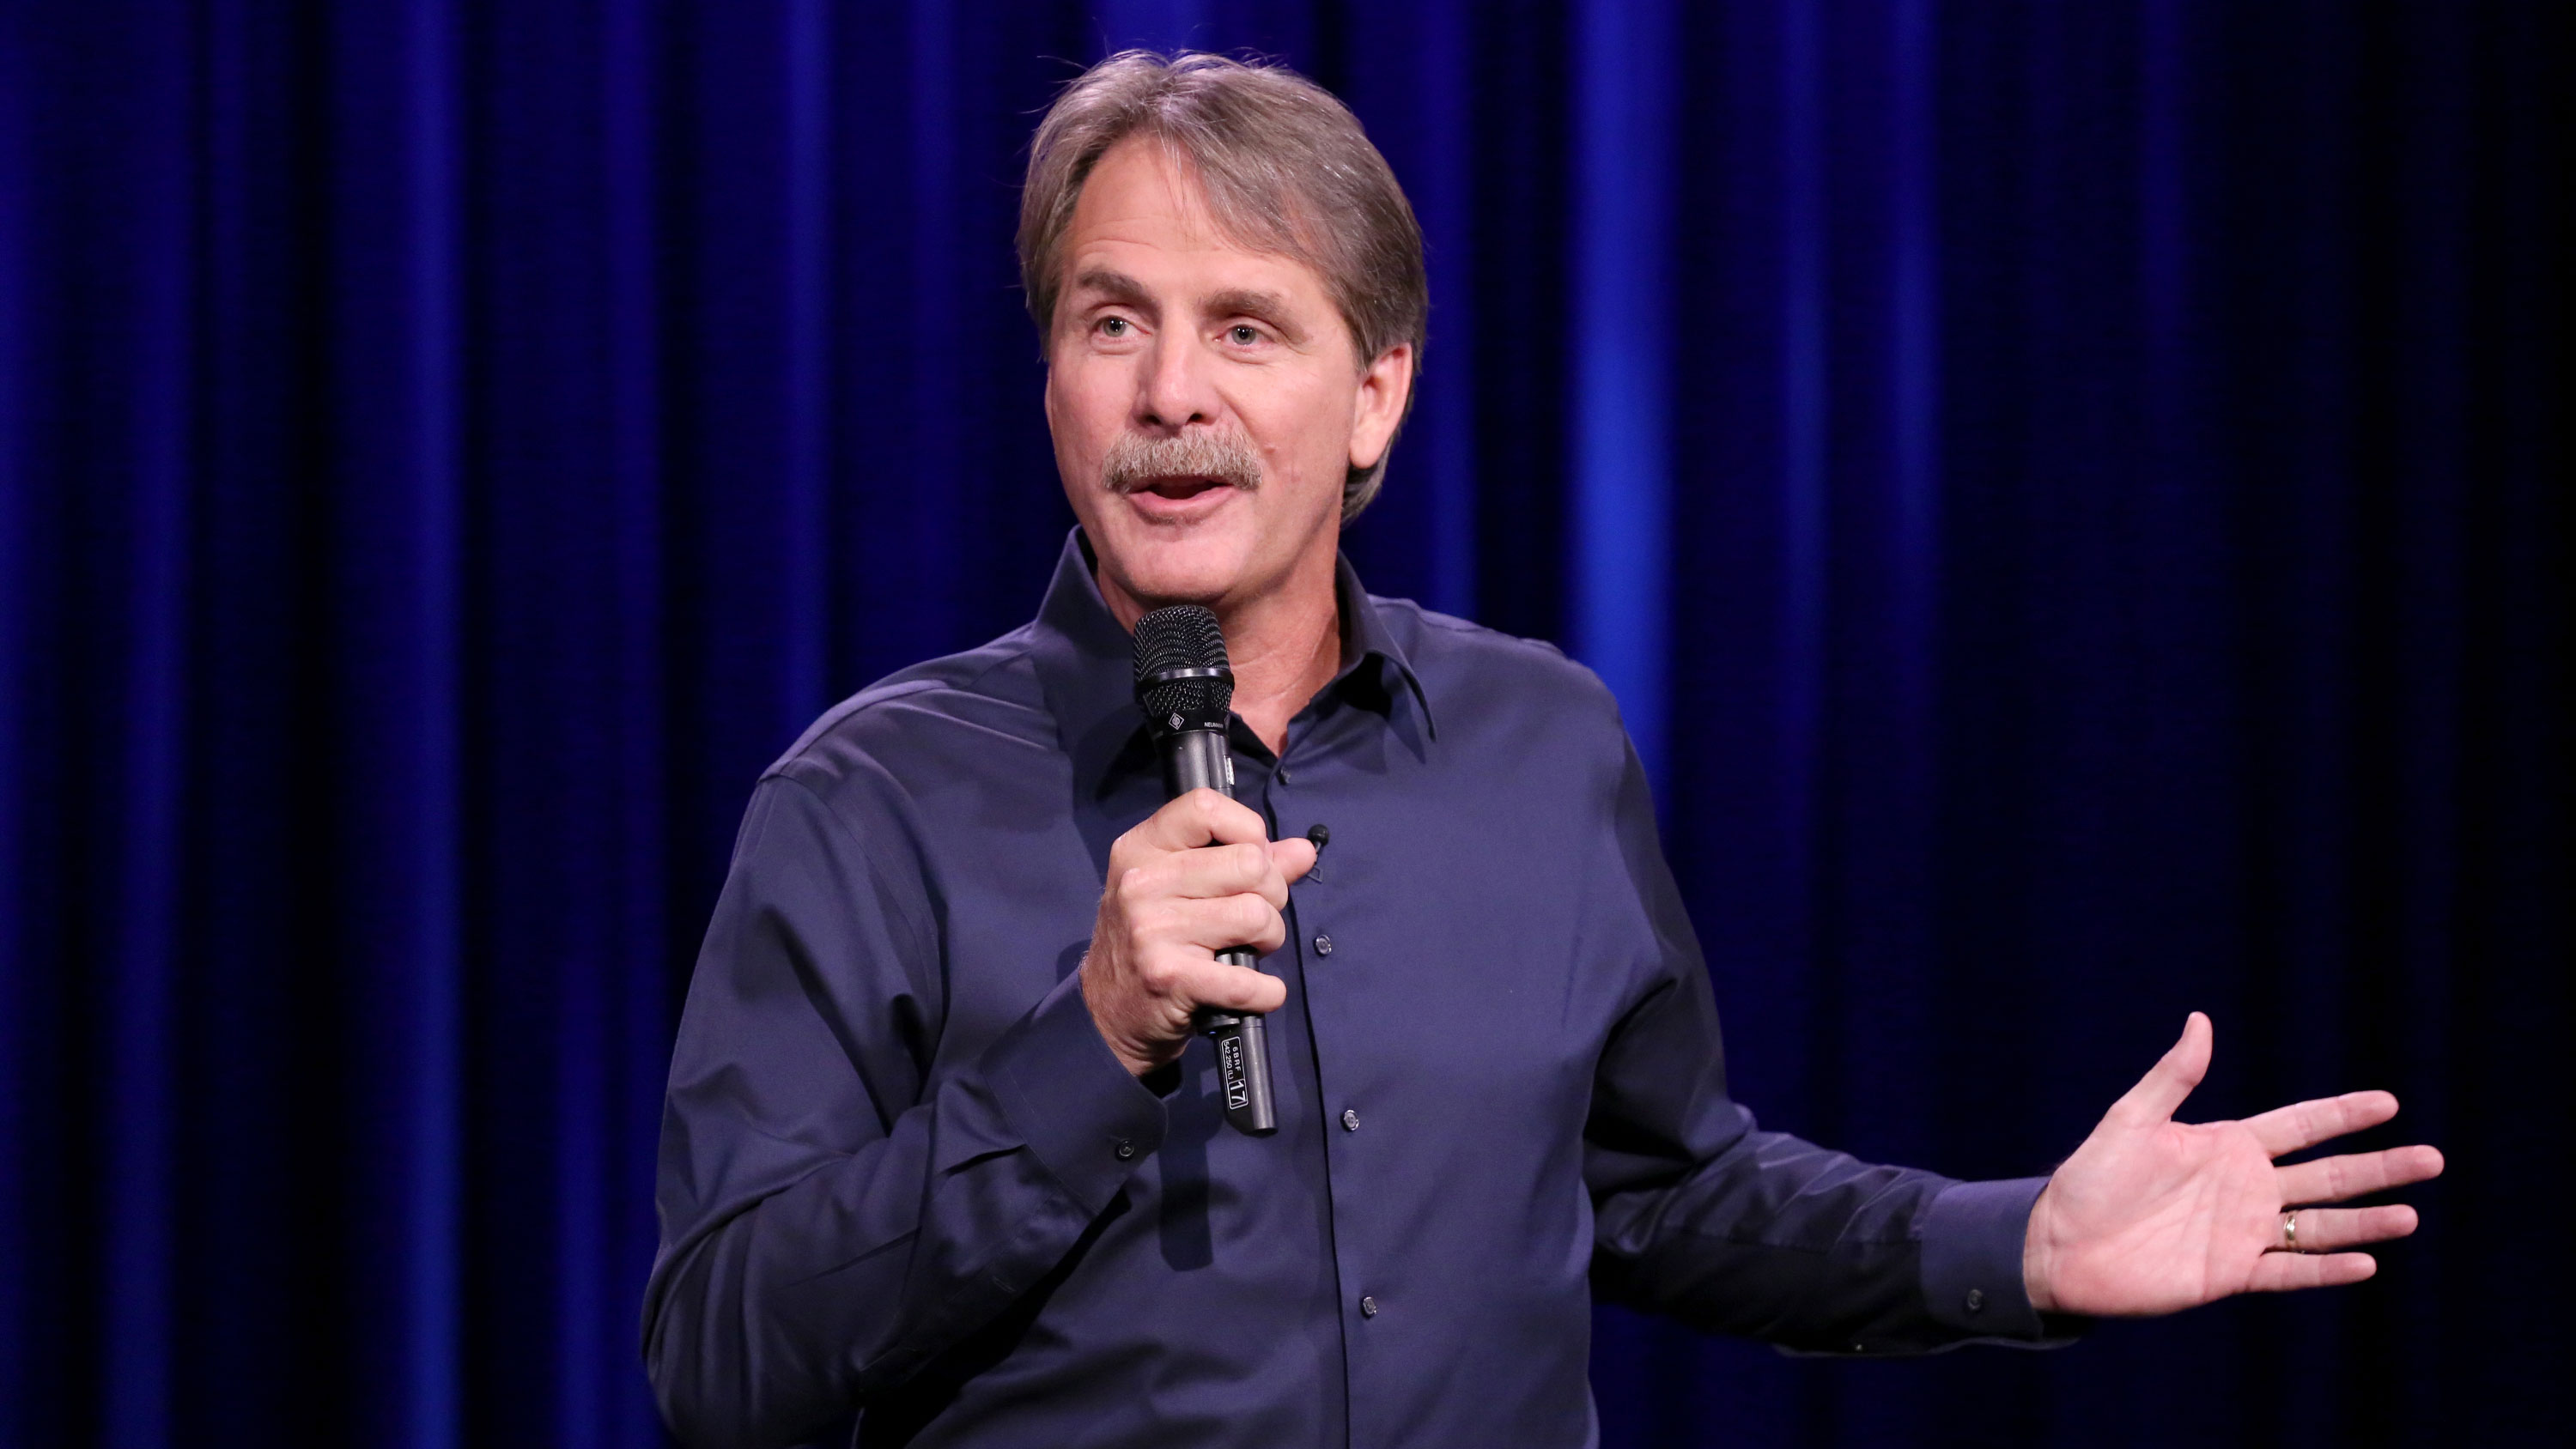 Jeff Foxworthy Stand-Up - The Tonight Show Nbc